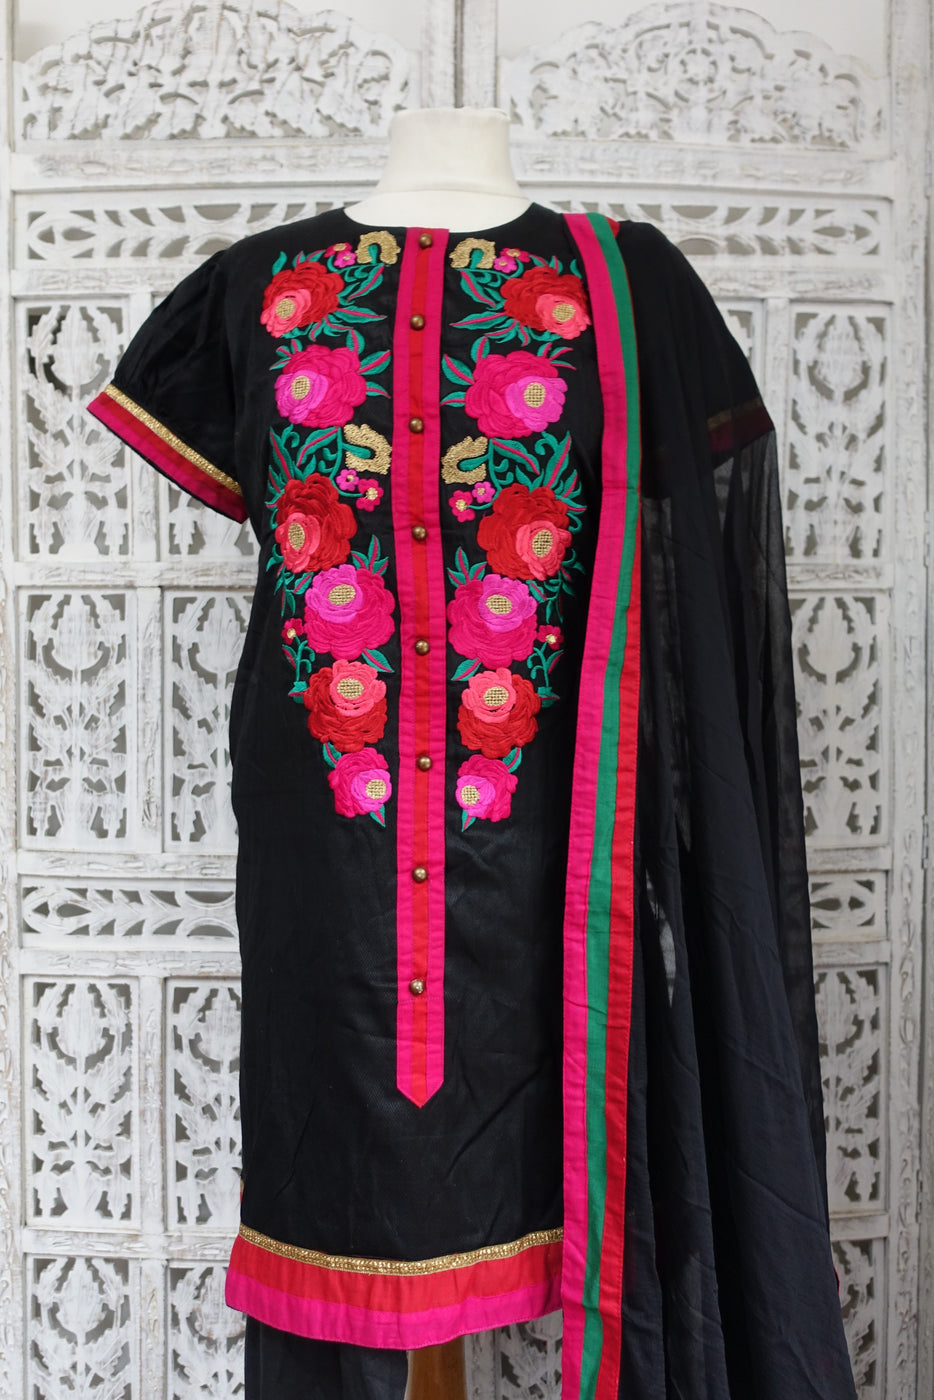 Black Embroidered Churidaar Suit - UK 14 / EU 40 - Preloved - Indian Suit Company